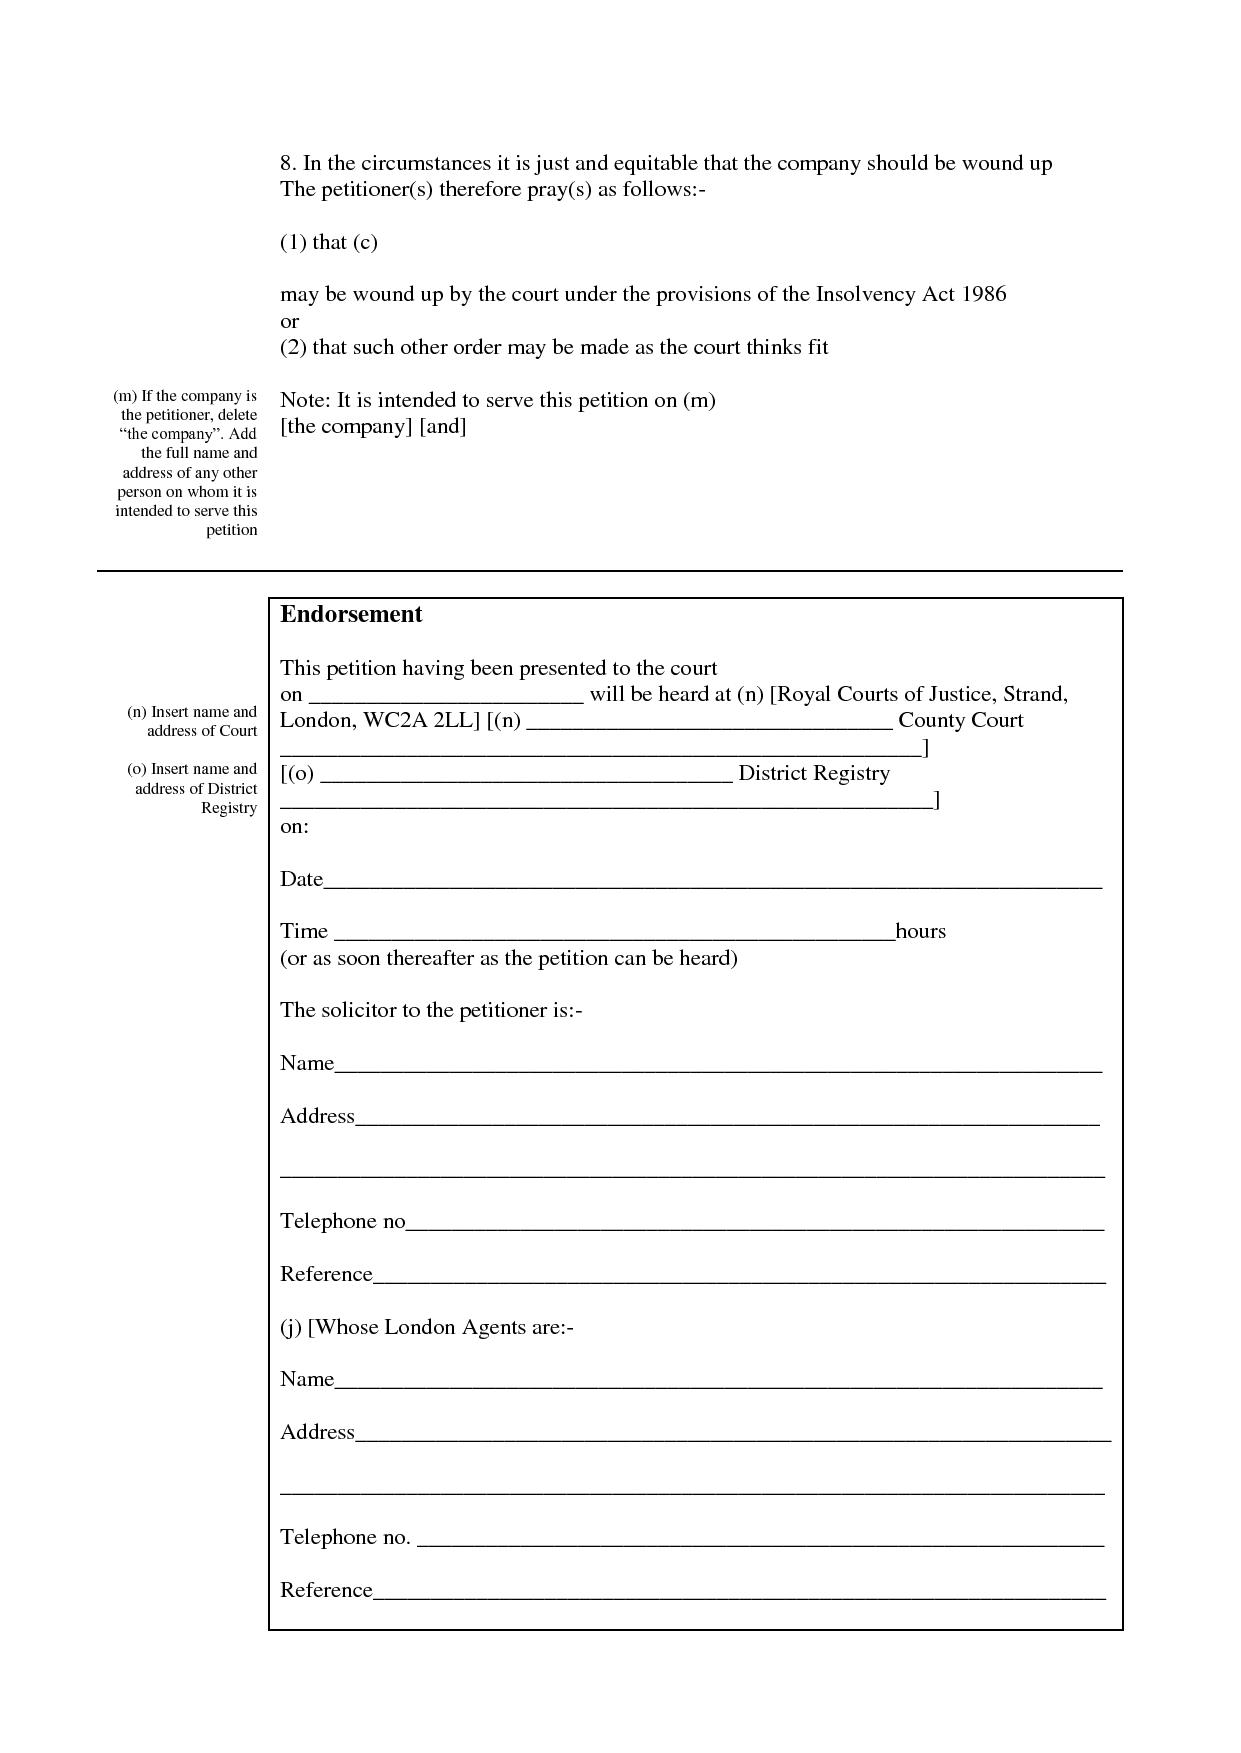 Blank winding up petition form download in pdf or doc for Templates for petitions